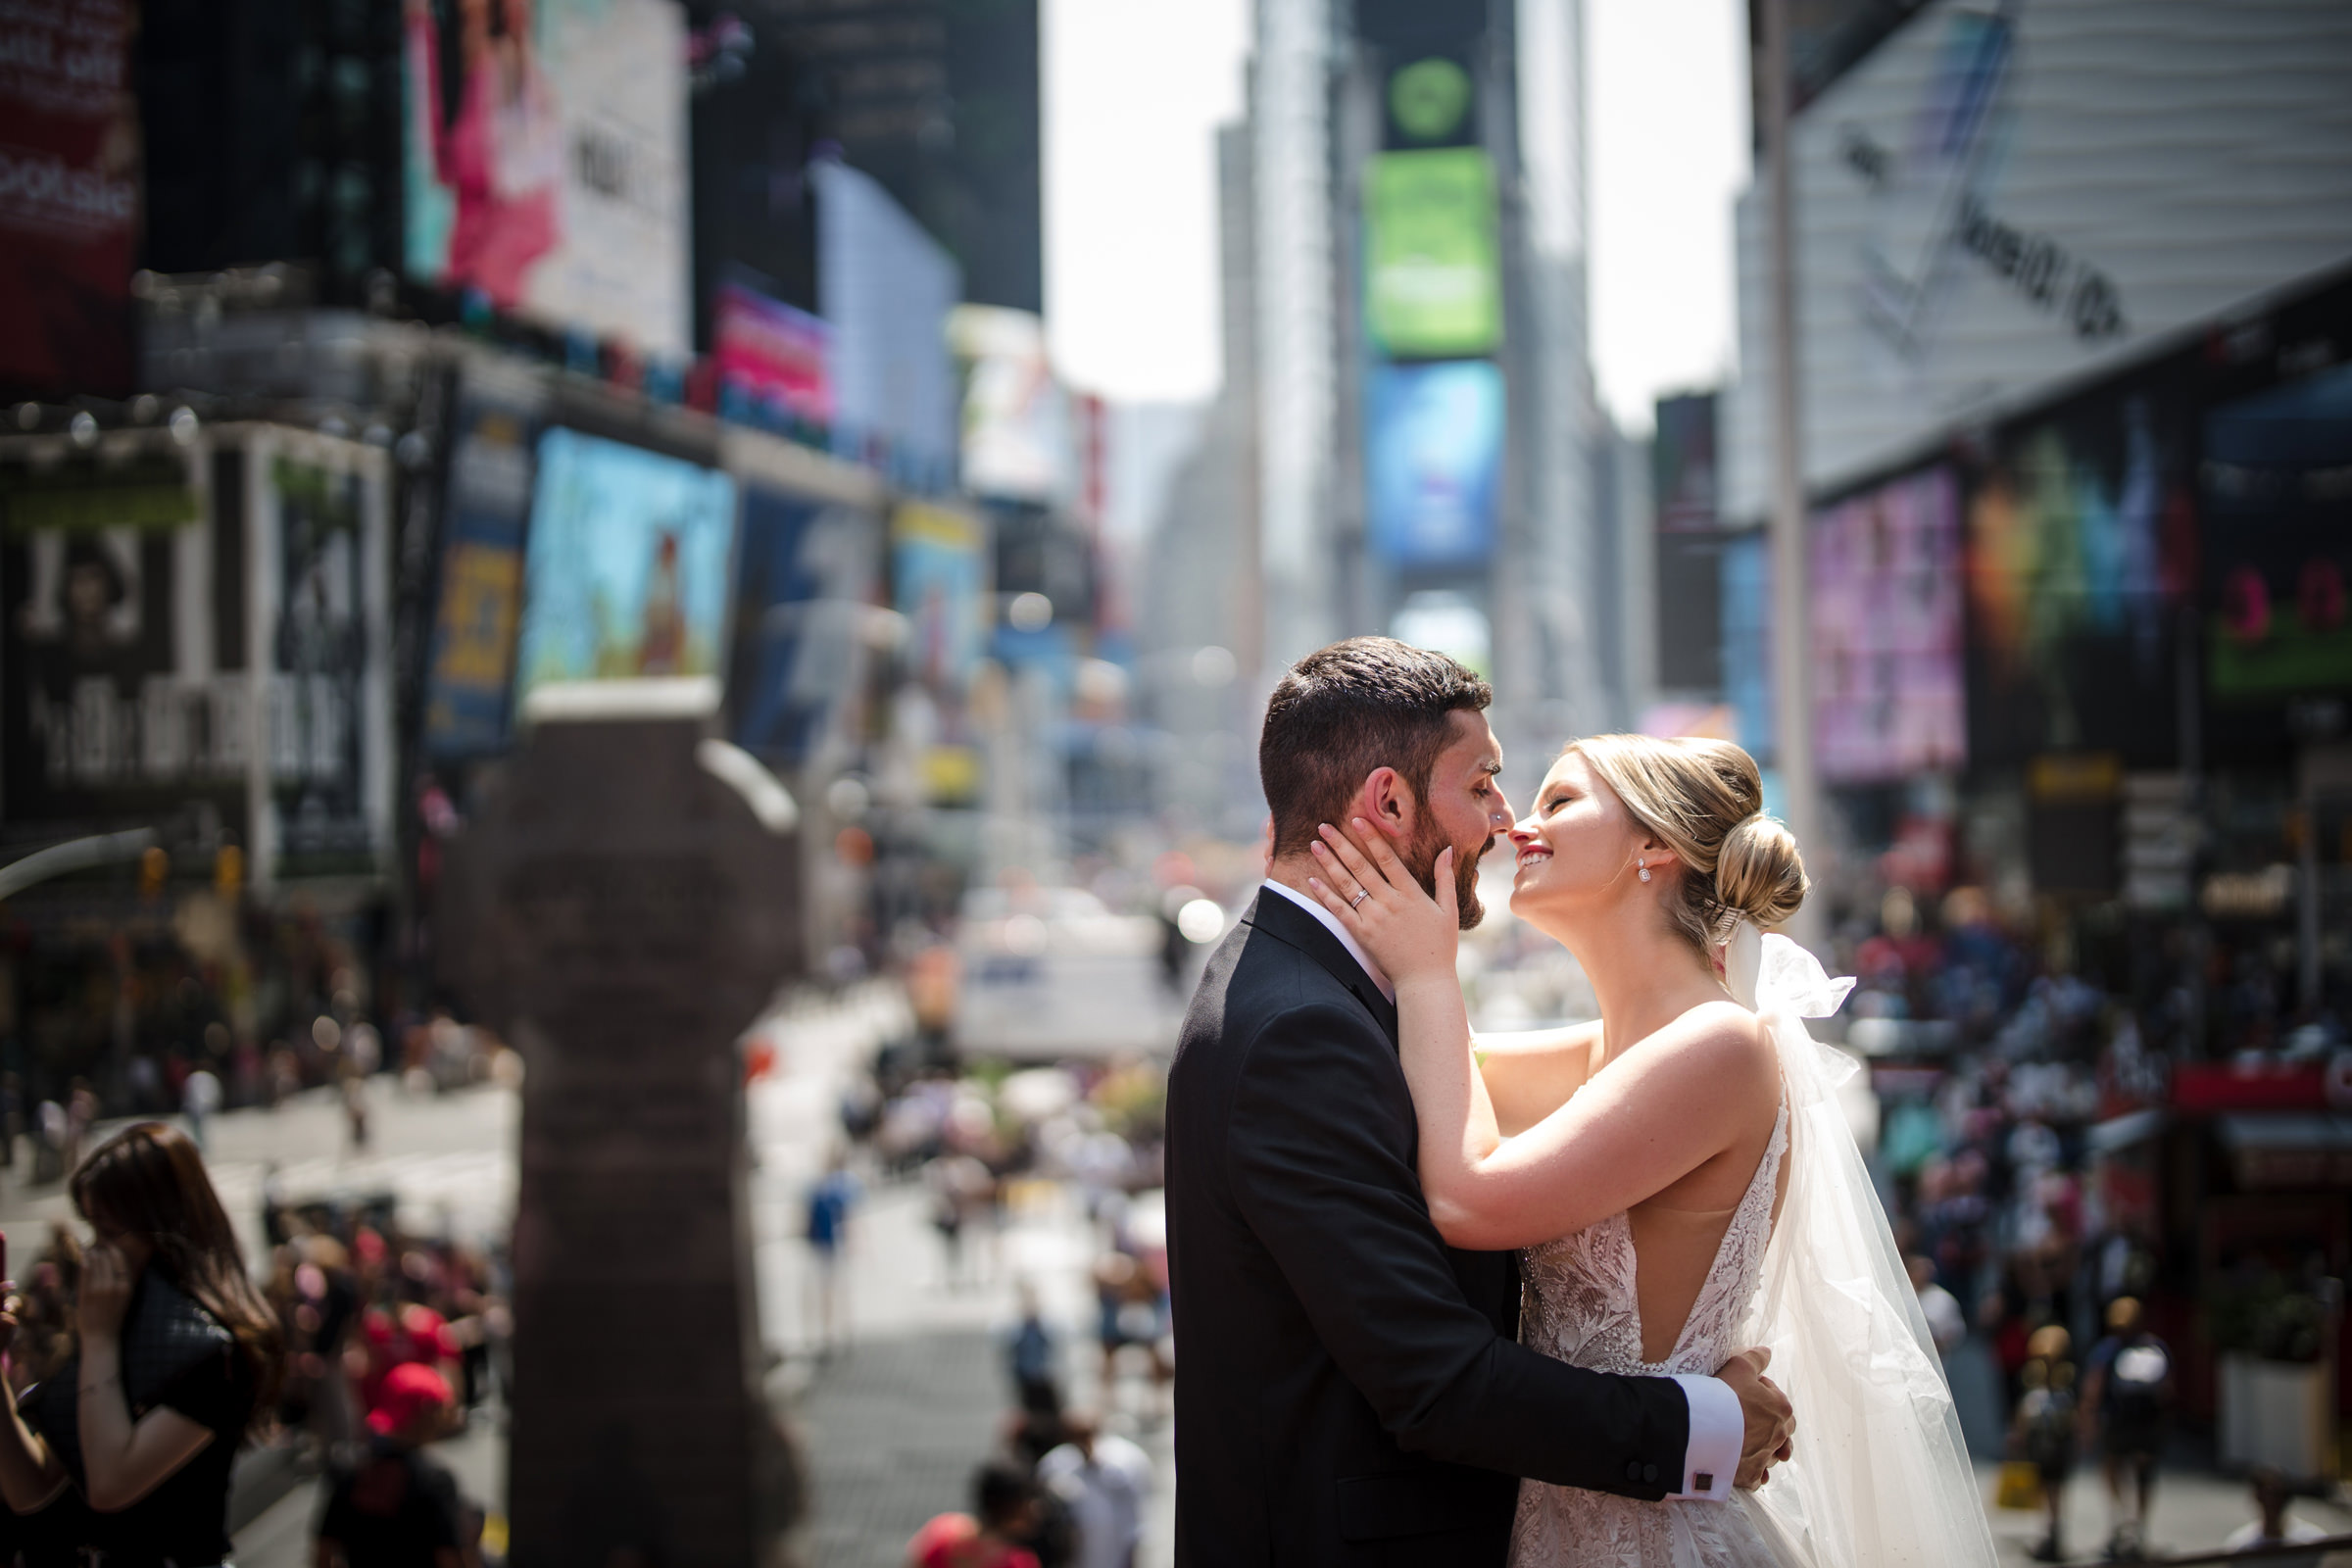 Bride and groom against times square NY - Photo by Susan Stripling Photography